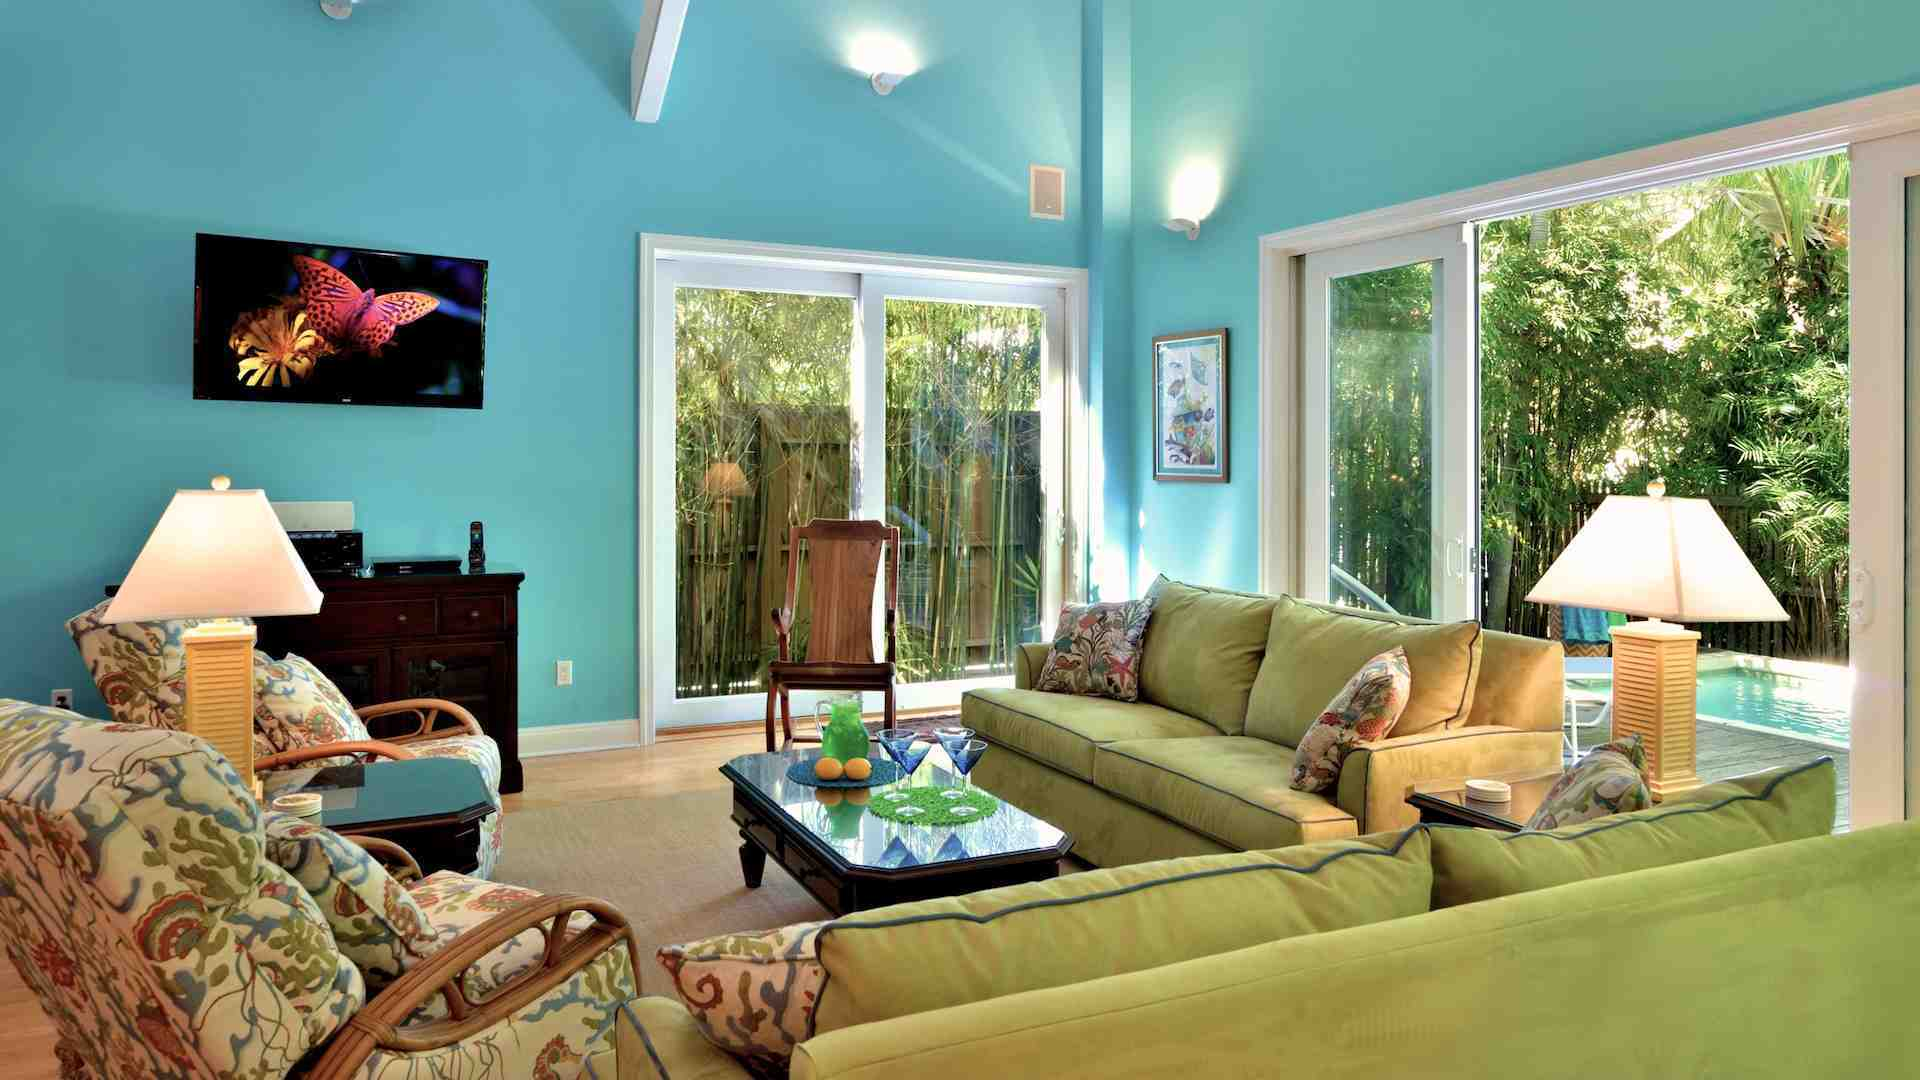 The living area has a large flat screen TV and comfortable seating options...